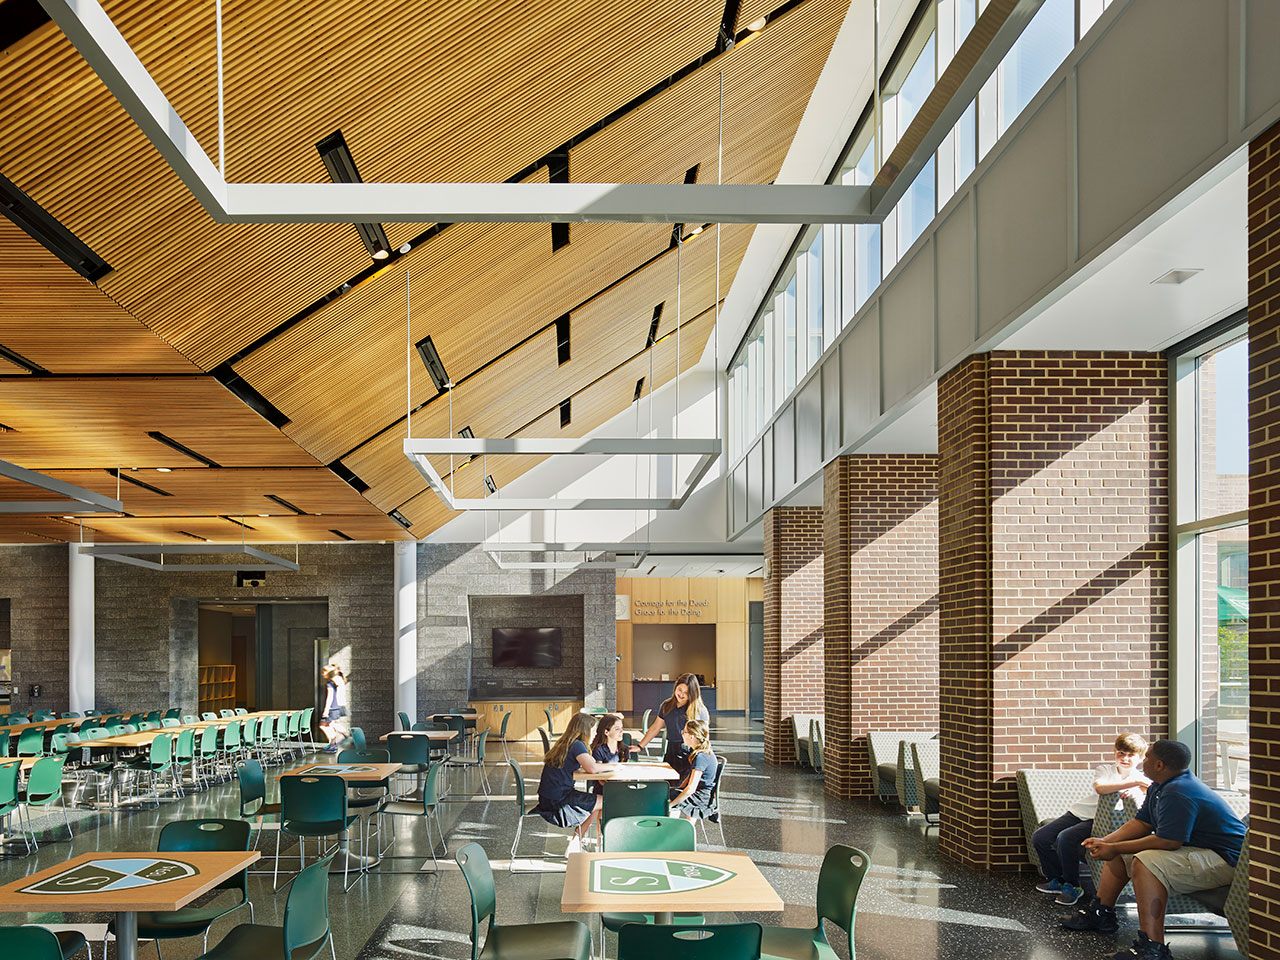 new campus building Shipley Commons, interior of the cafeteria